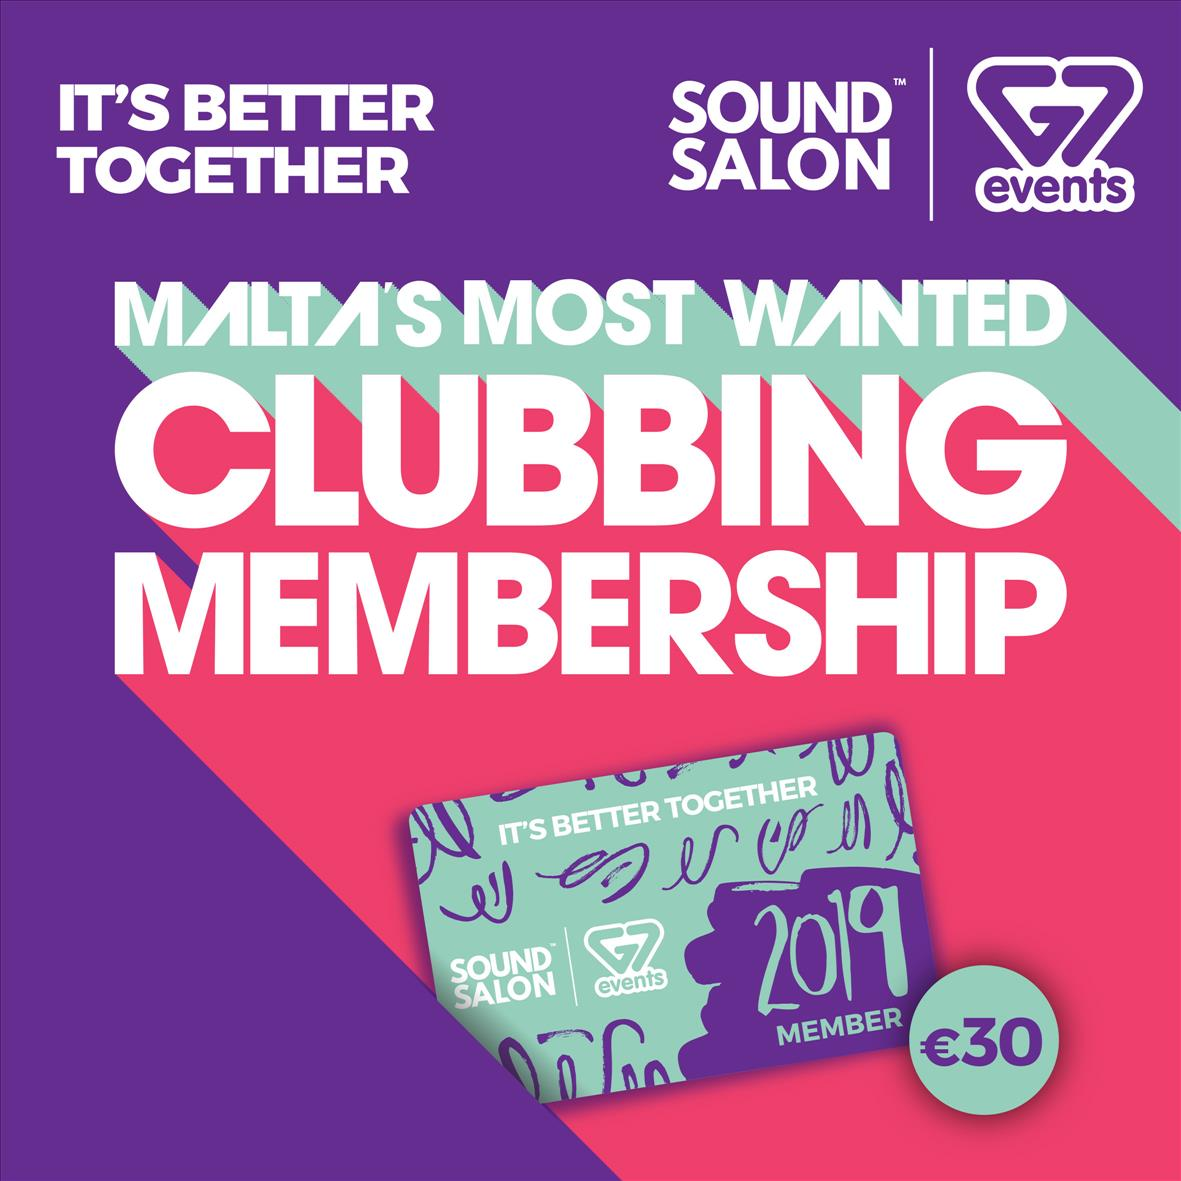 G7 Events & Sound Salon - 2019 Membership Card flyer